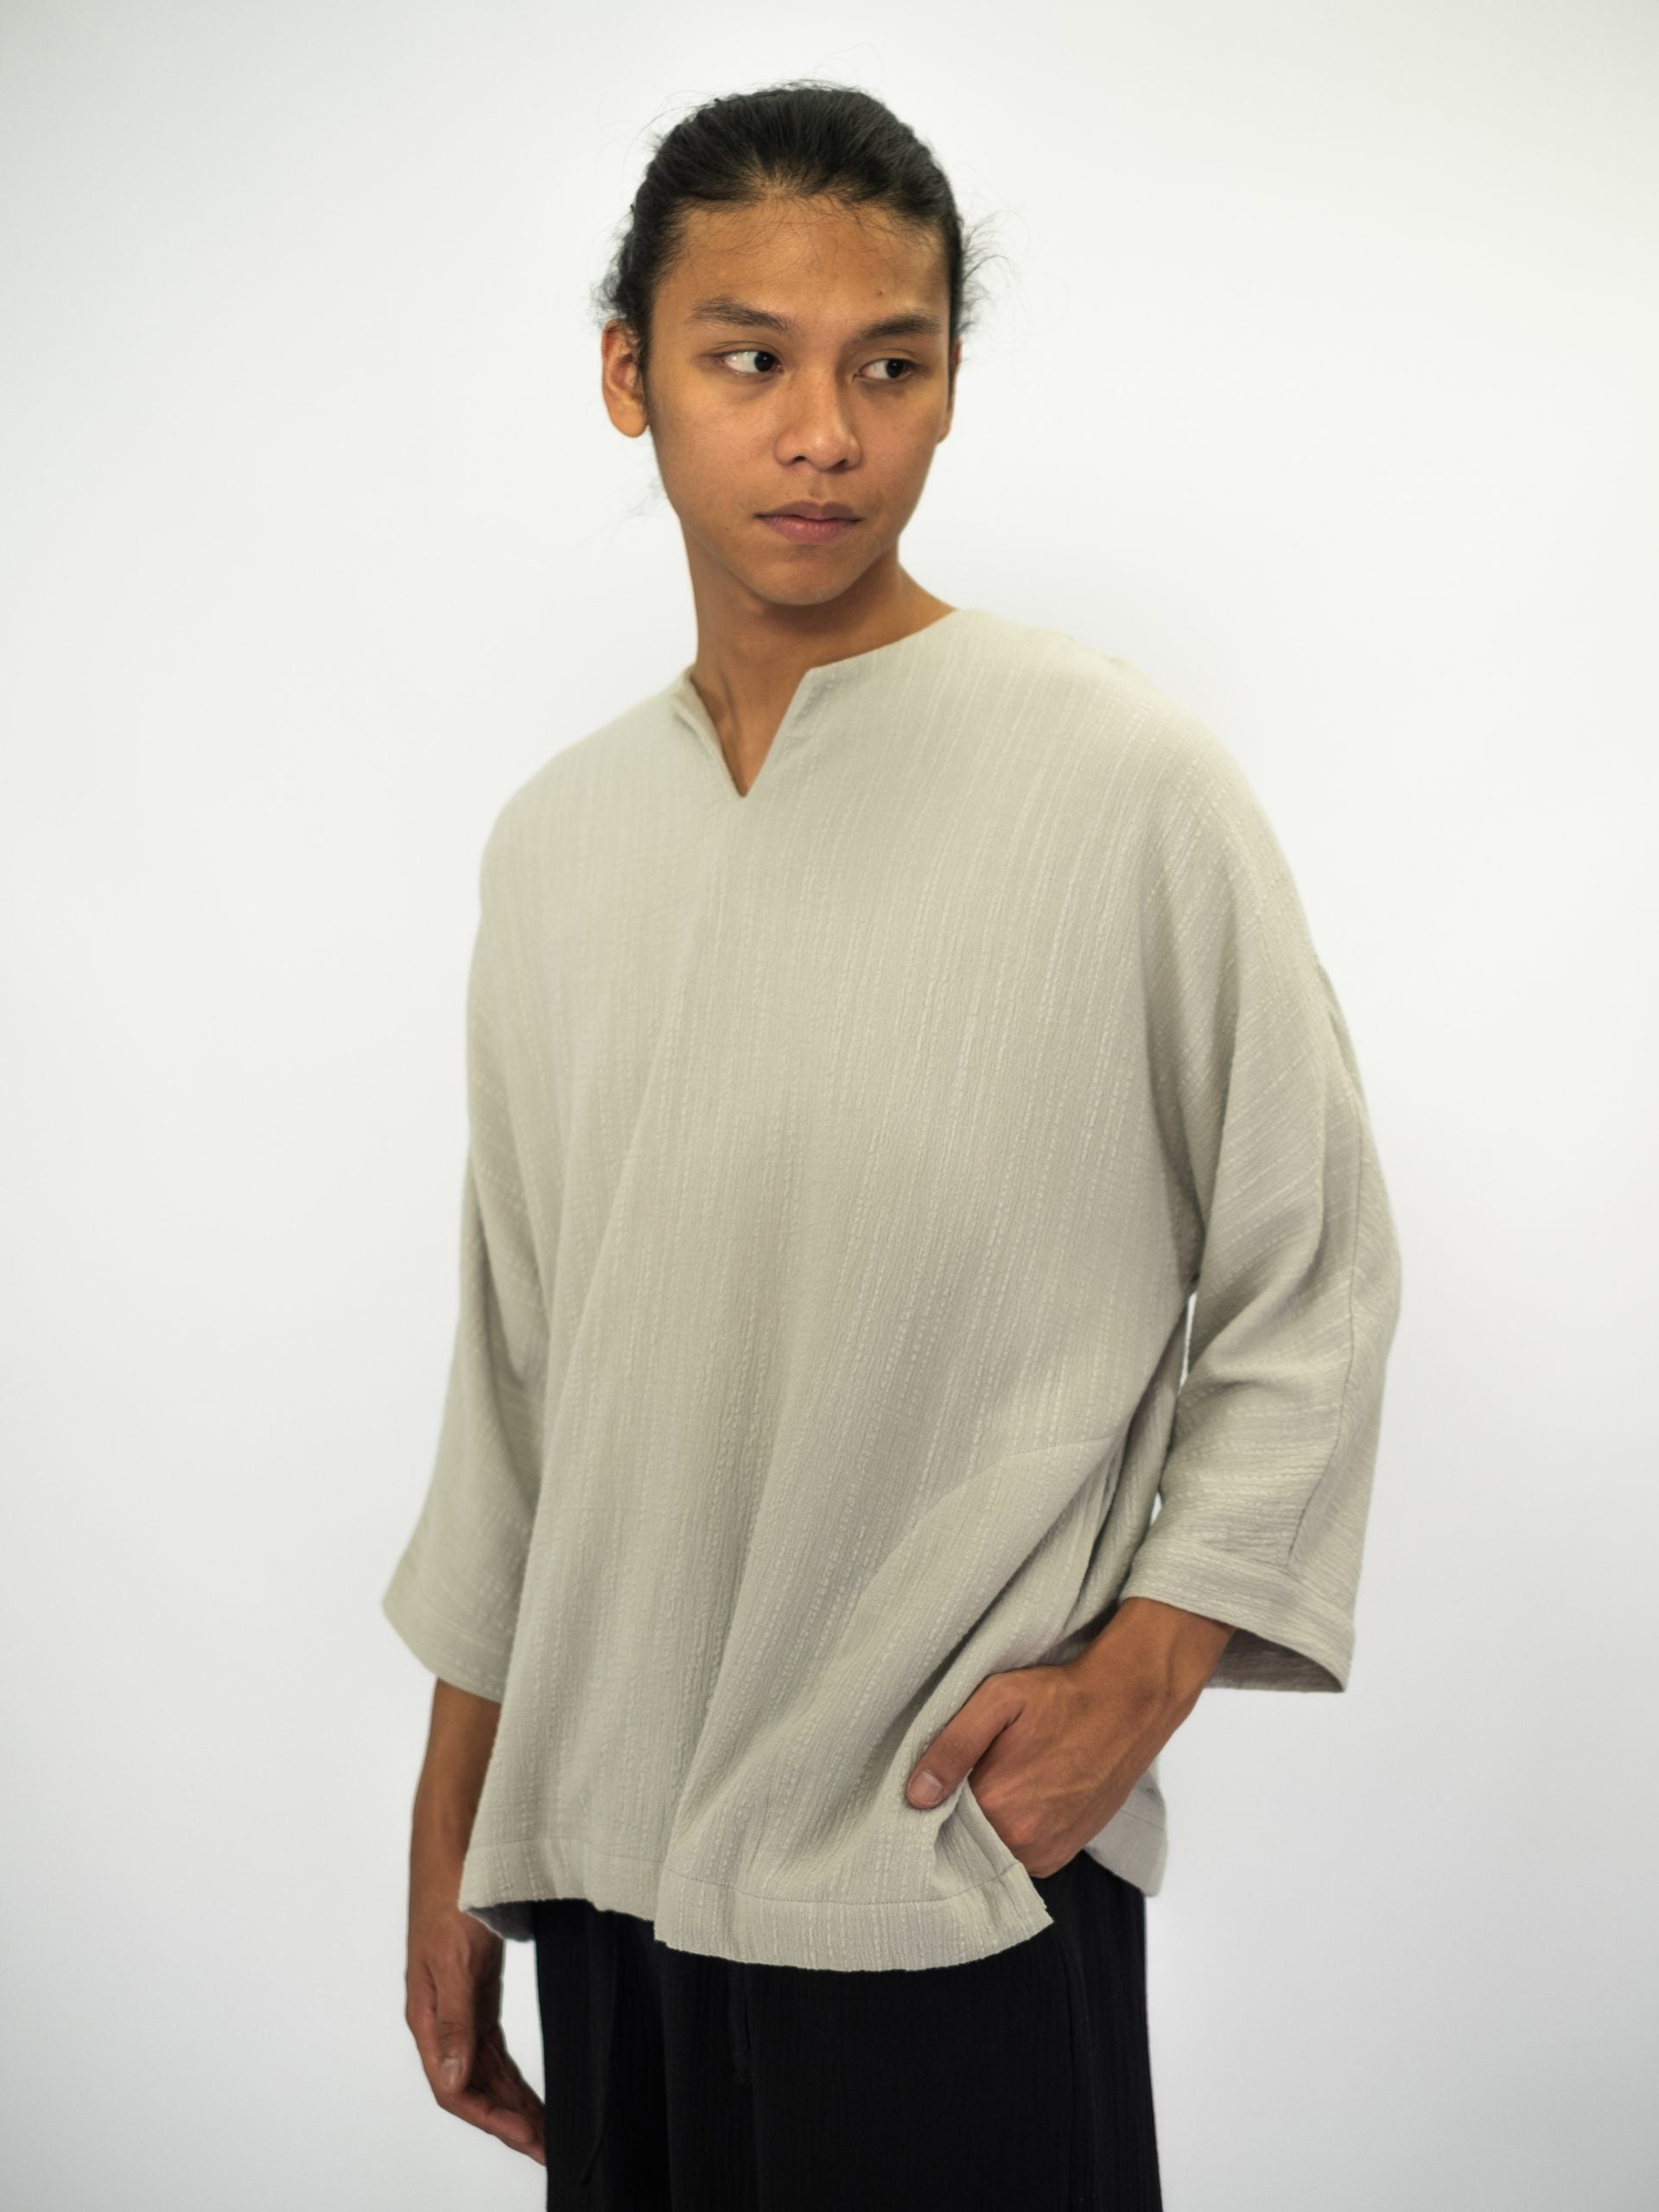 Unisex: Sandar Crinkled Top (Grey)